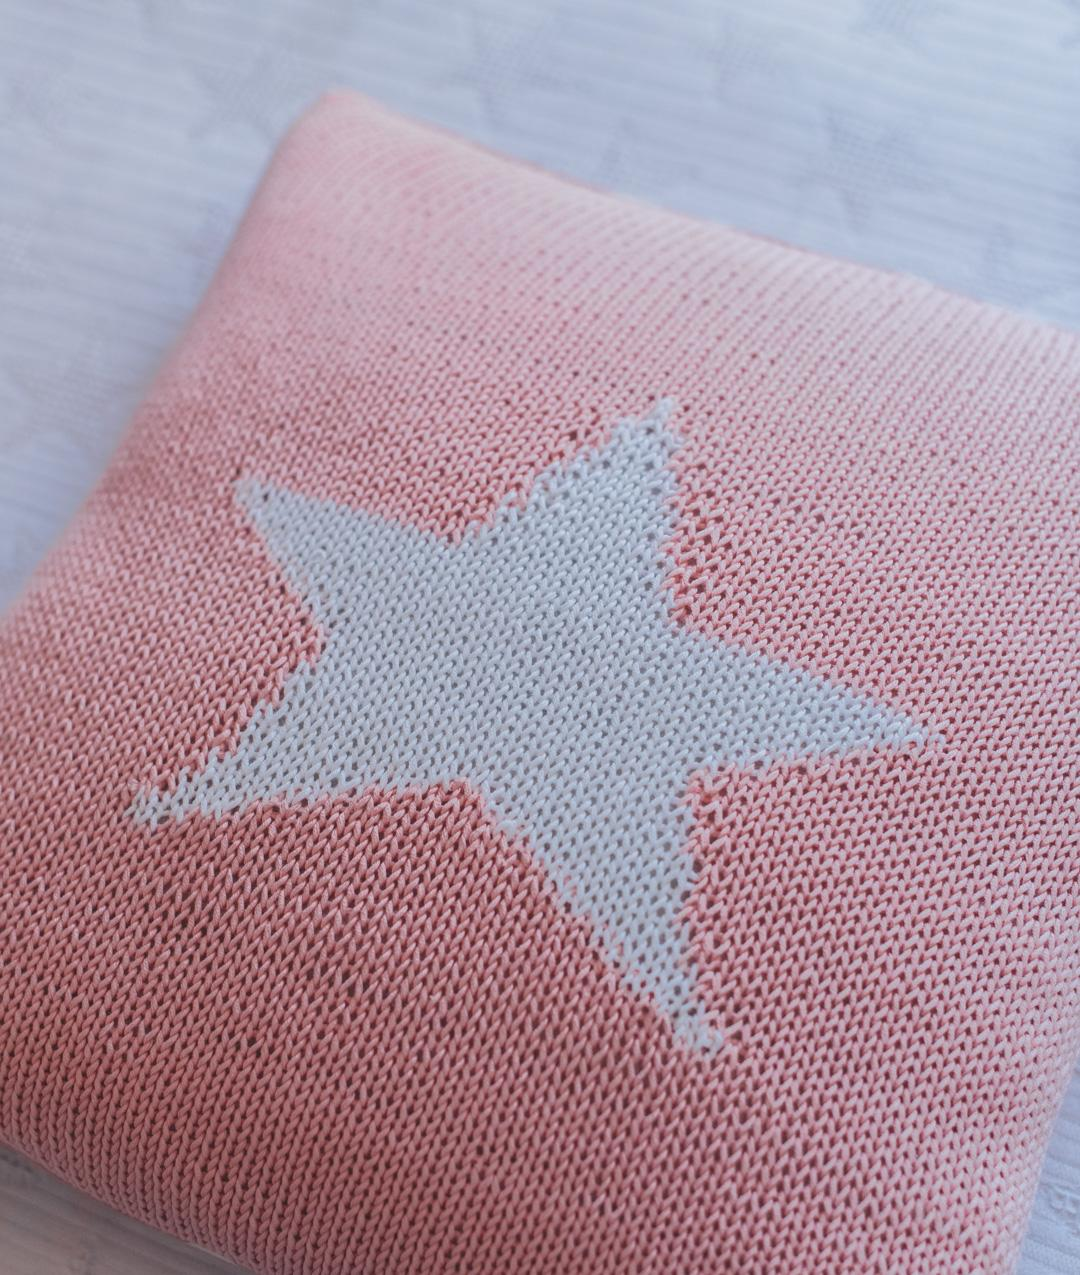 Promo KNIT20 - CasaPromo KNIT20 - Casa - MY LITTLE STAR CUSHION - 1